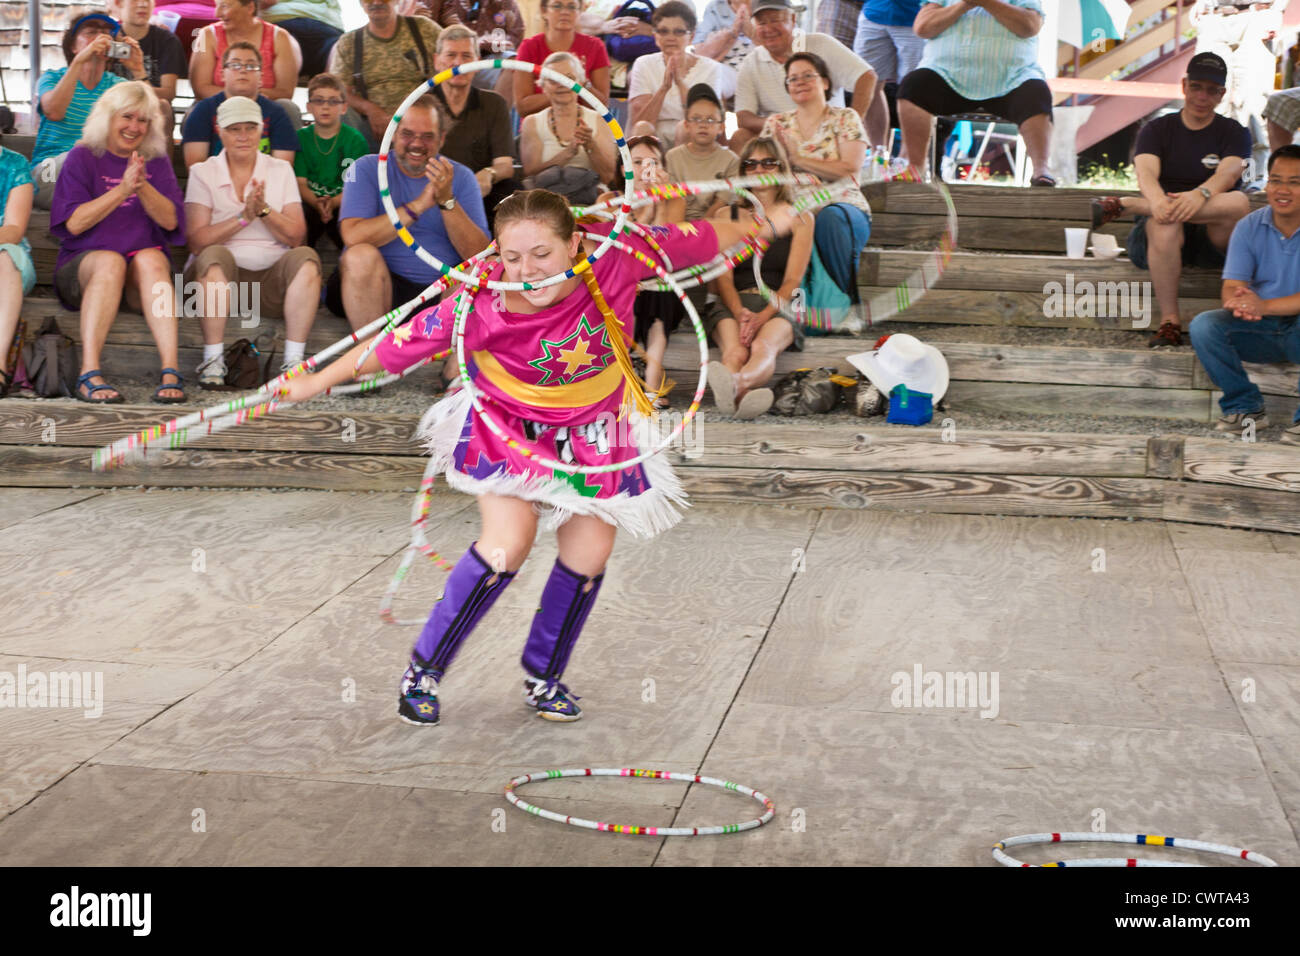 Girl, 15, Ojibwe tribe, hoop dancing at Iroquois Museum Festival, Schoharie County, New York State - Stock Image